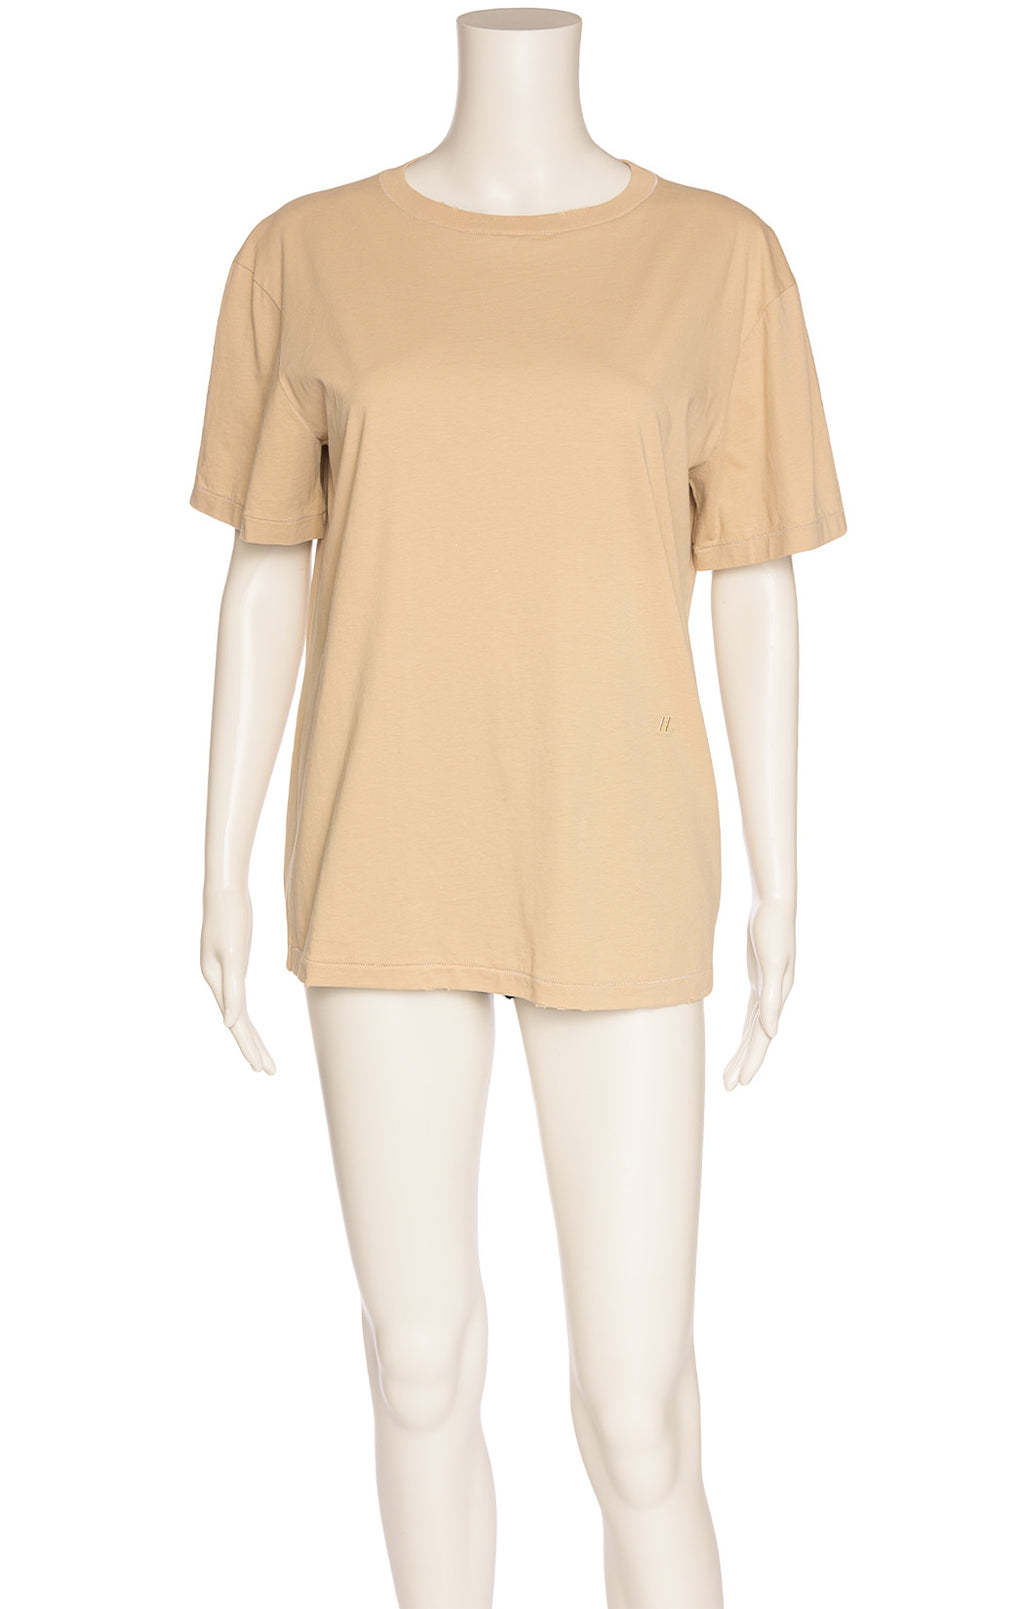 Khaki colored shirt sleeve crew neck t-shirt with frayed collar